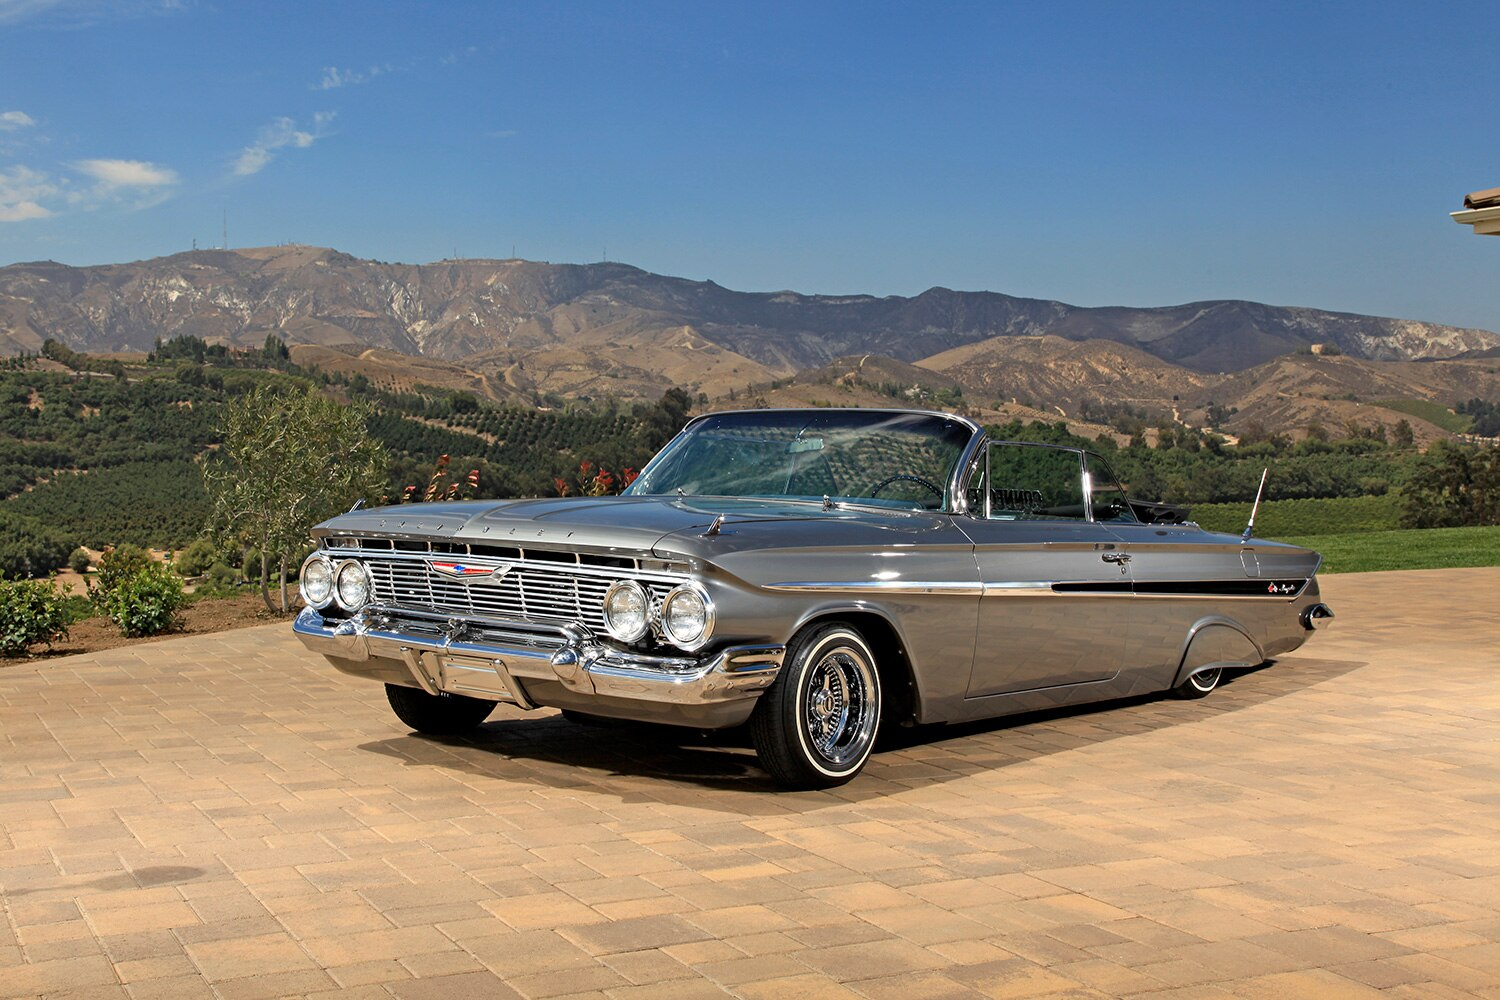 1961-chevrolet-impala-convertible-front-left-side-view-promo